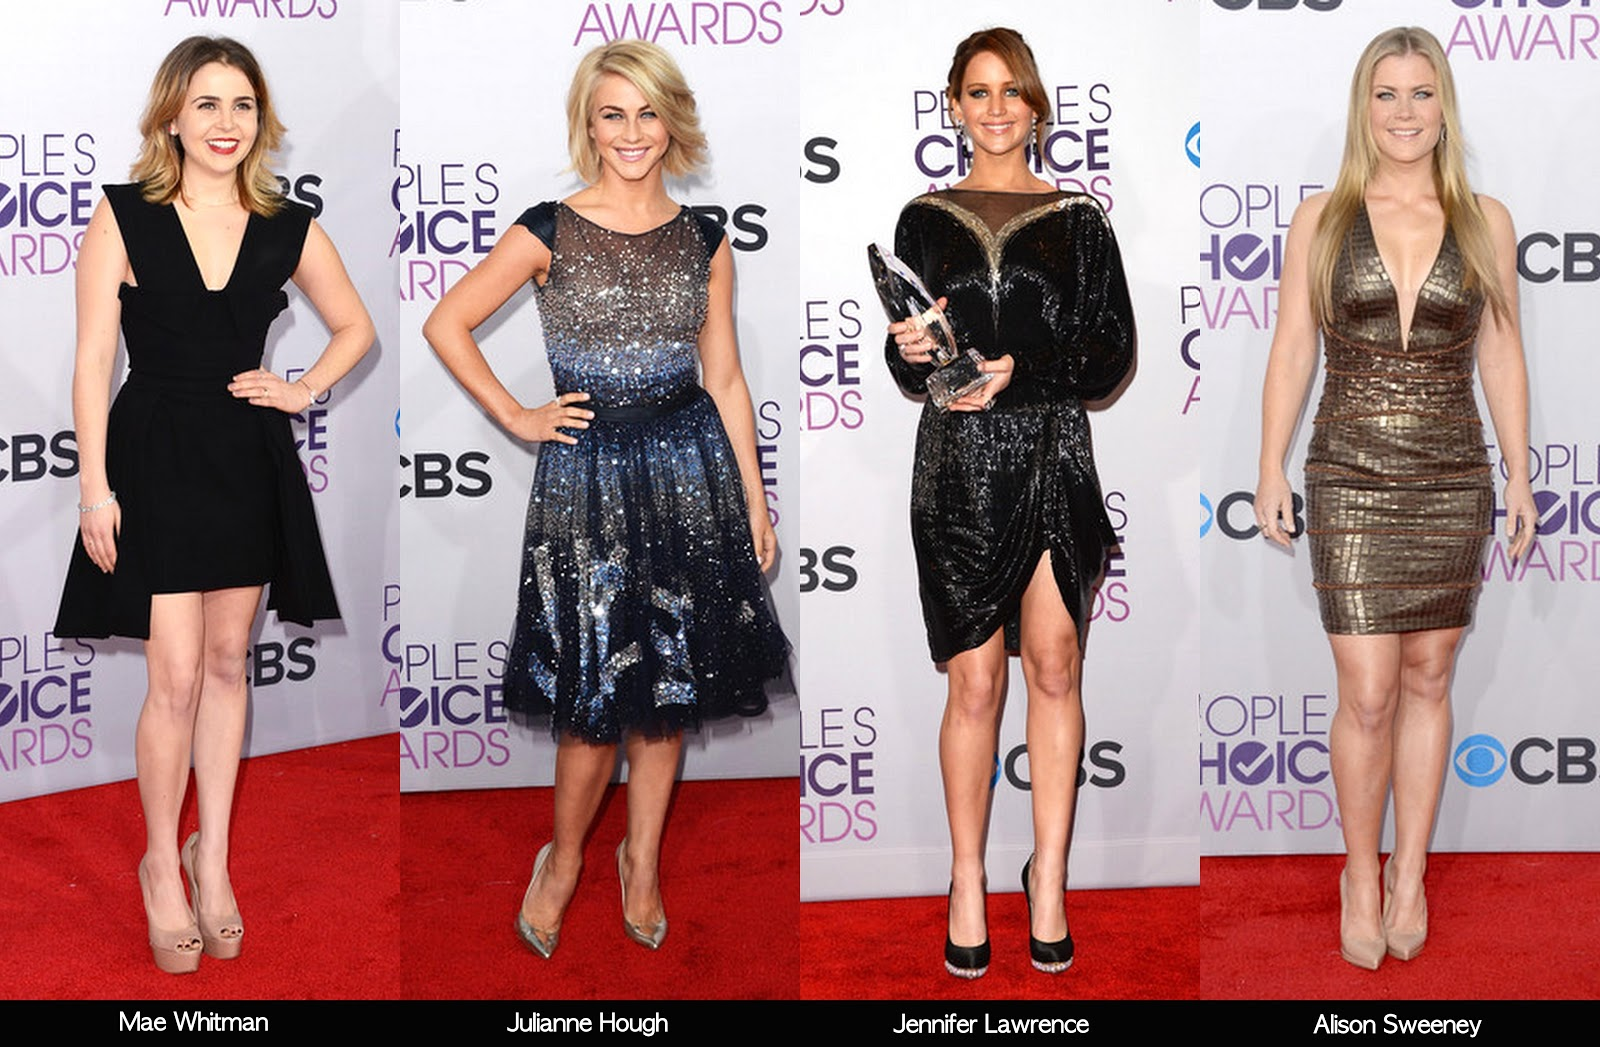 Awards Season Kicked Off Last Night With The People's Choice Awards